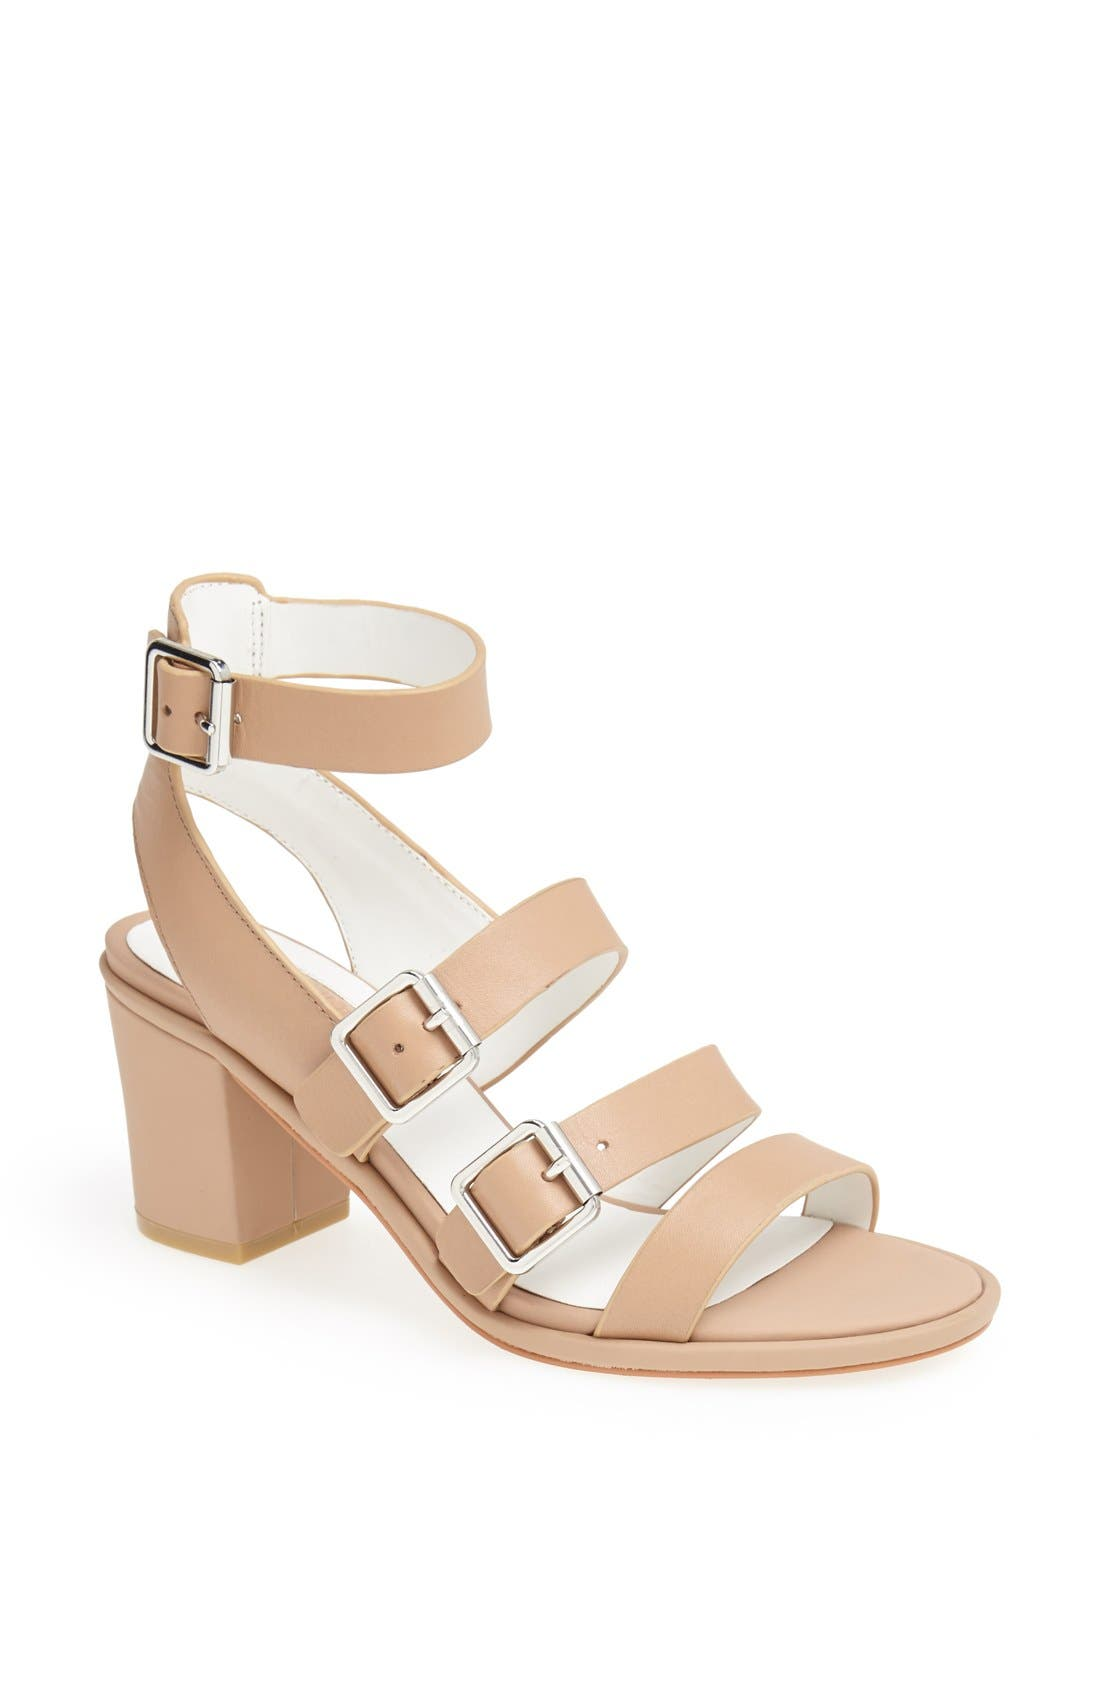 Alternate Image 1 Selected - Topshop 'Nowhere' Mid Heel Sandal